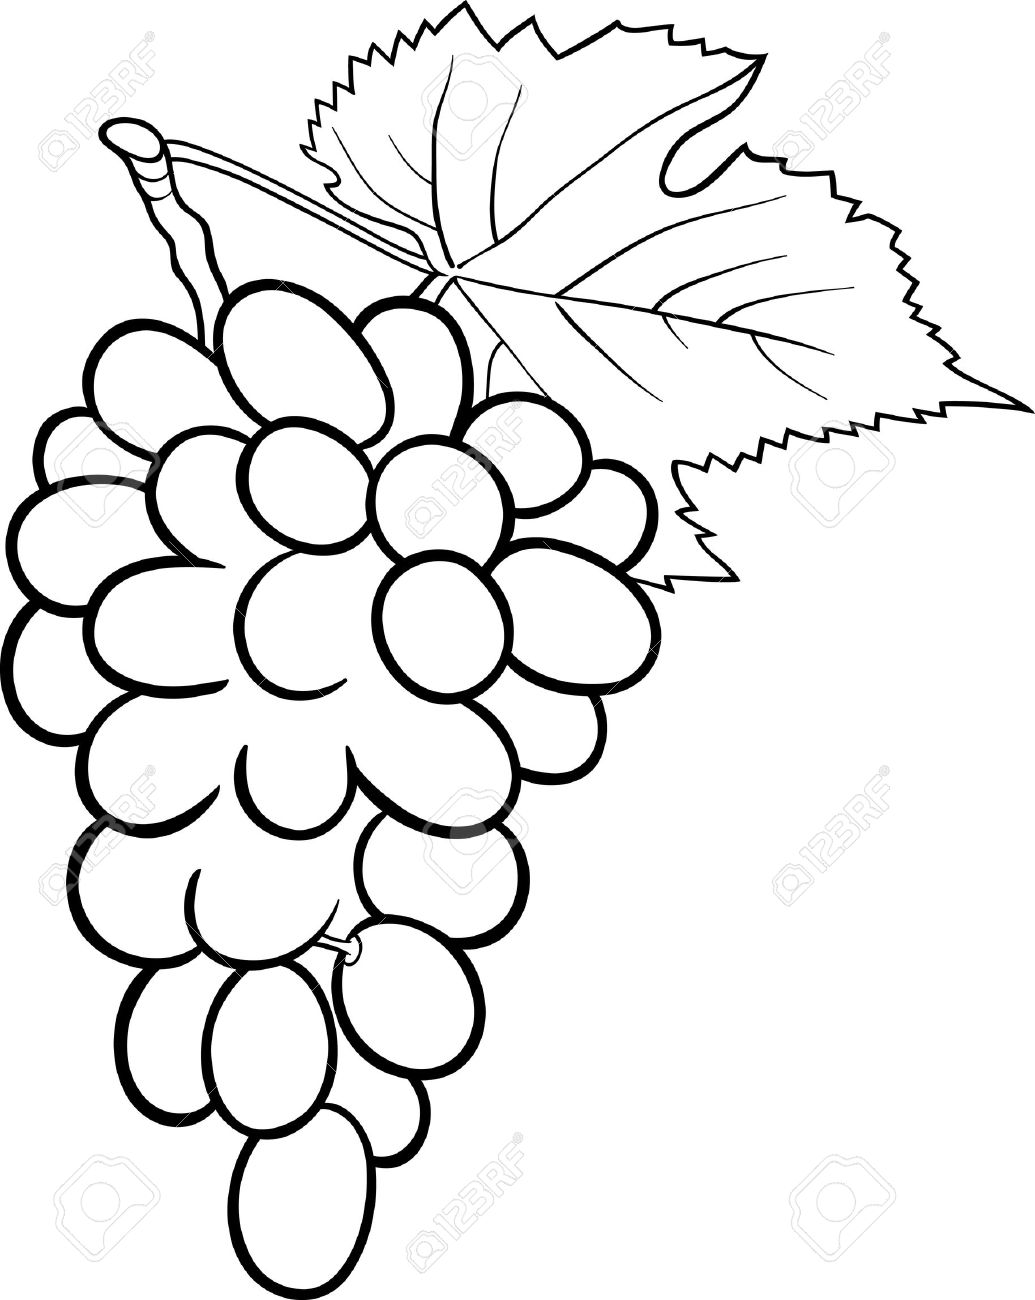 Black And White Cartoon Illustration Of Bunch Grapes Or Grapevine Fruit Food Object For Coloring